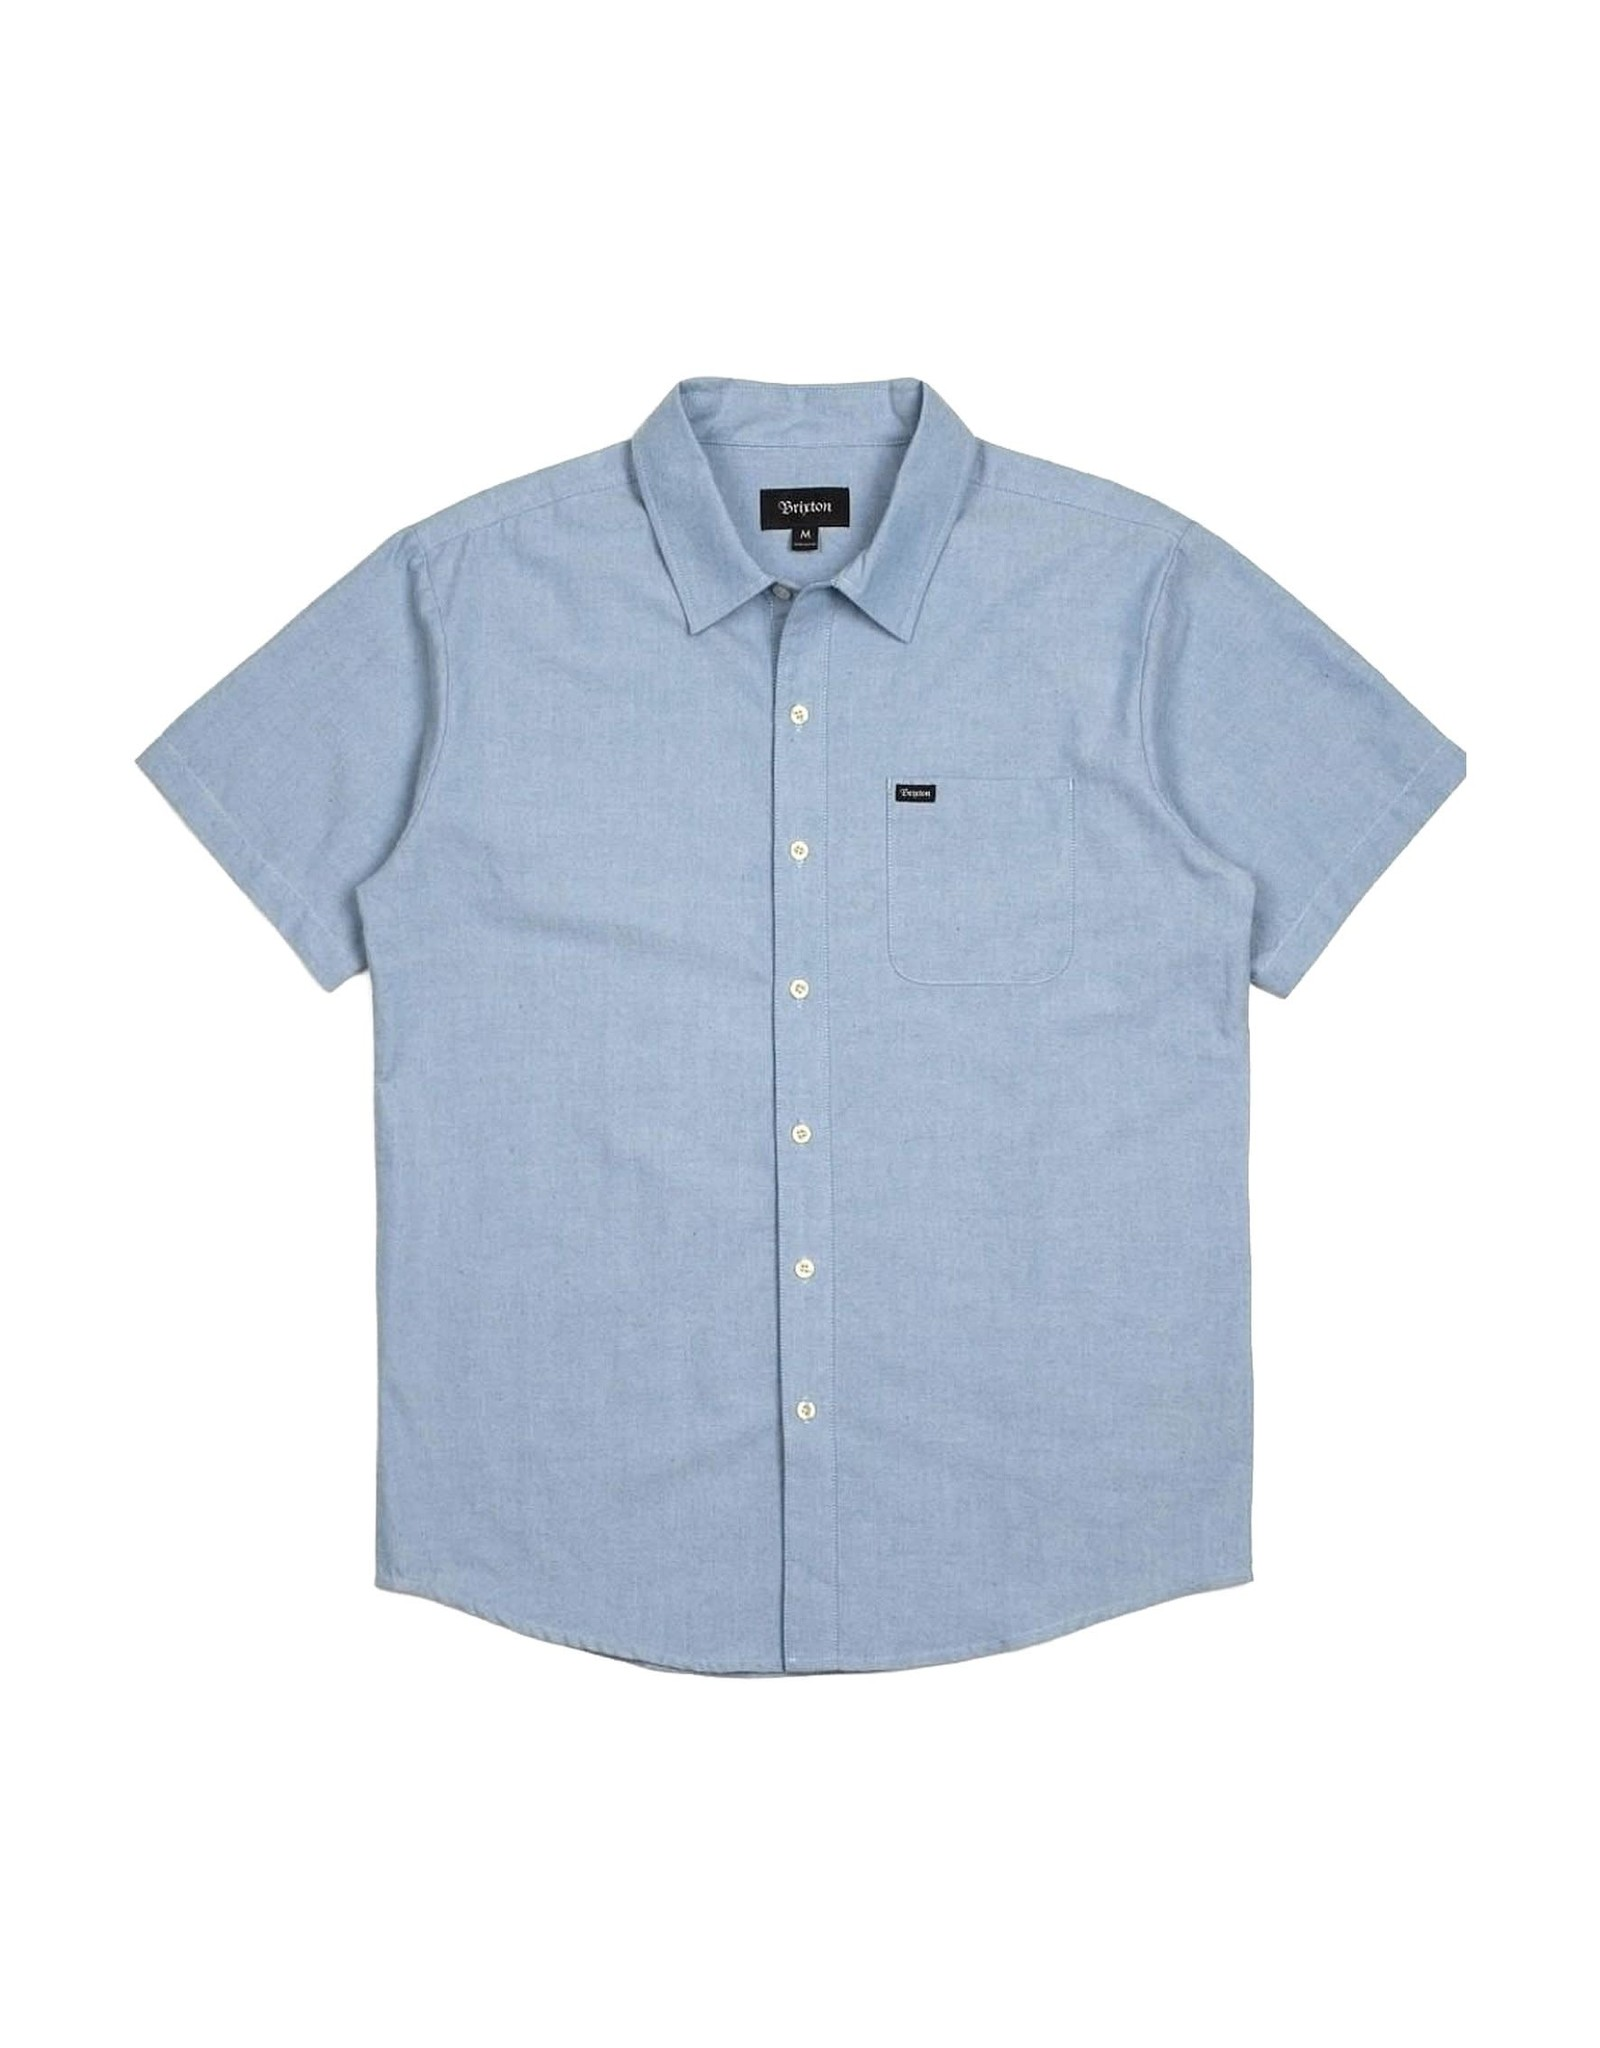 Brixton Brixton - Chemise homme charter oxford light blue chambray